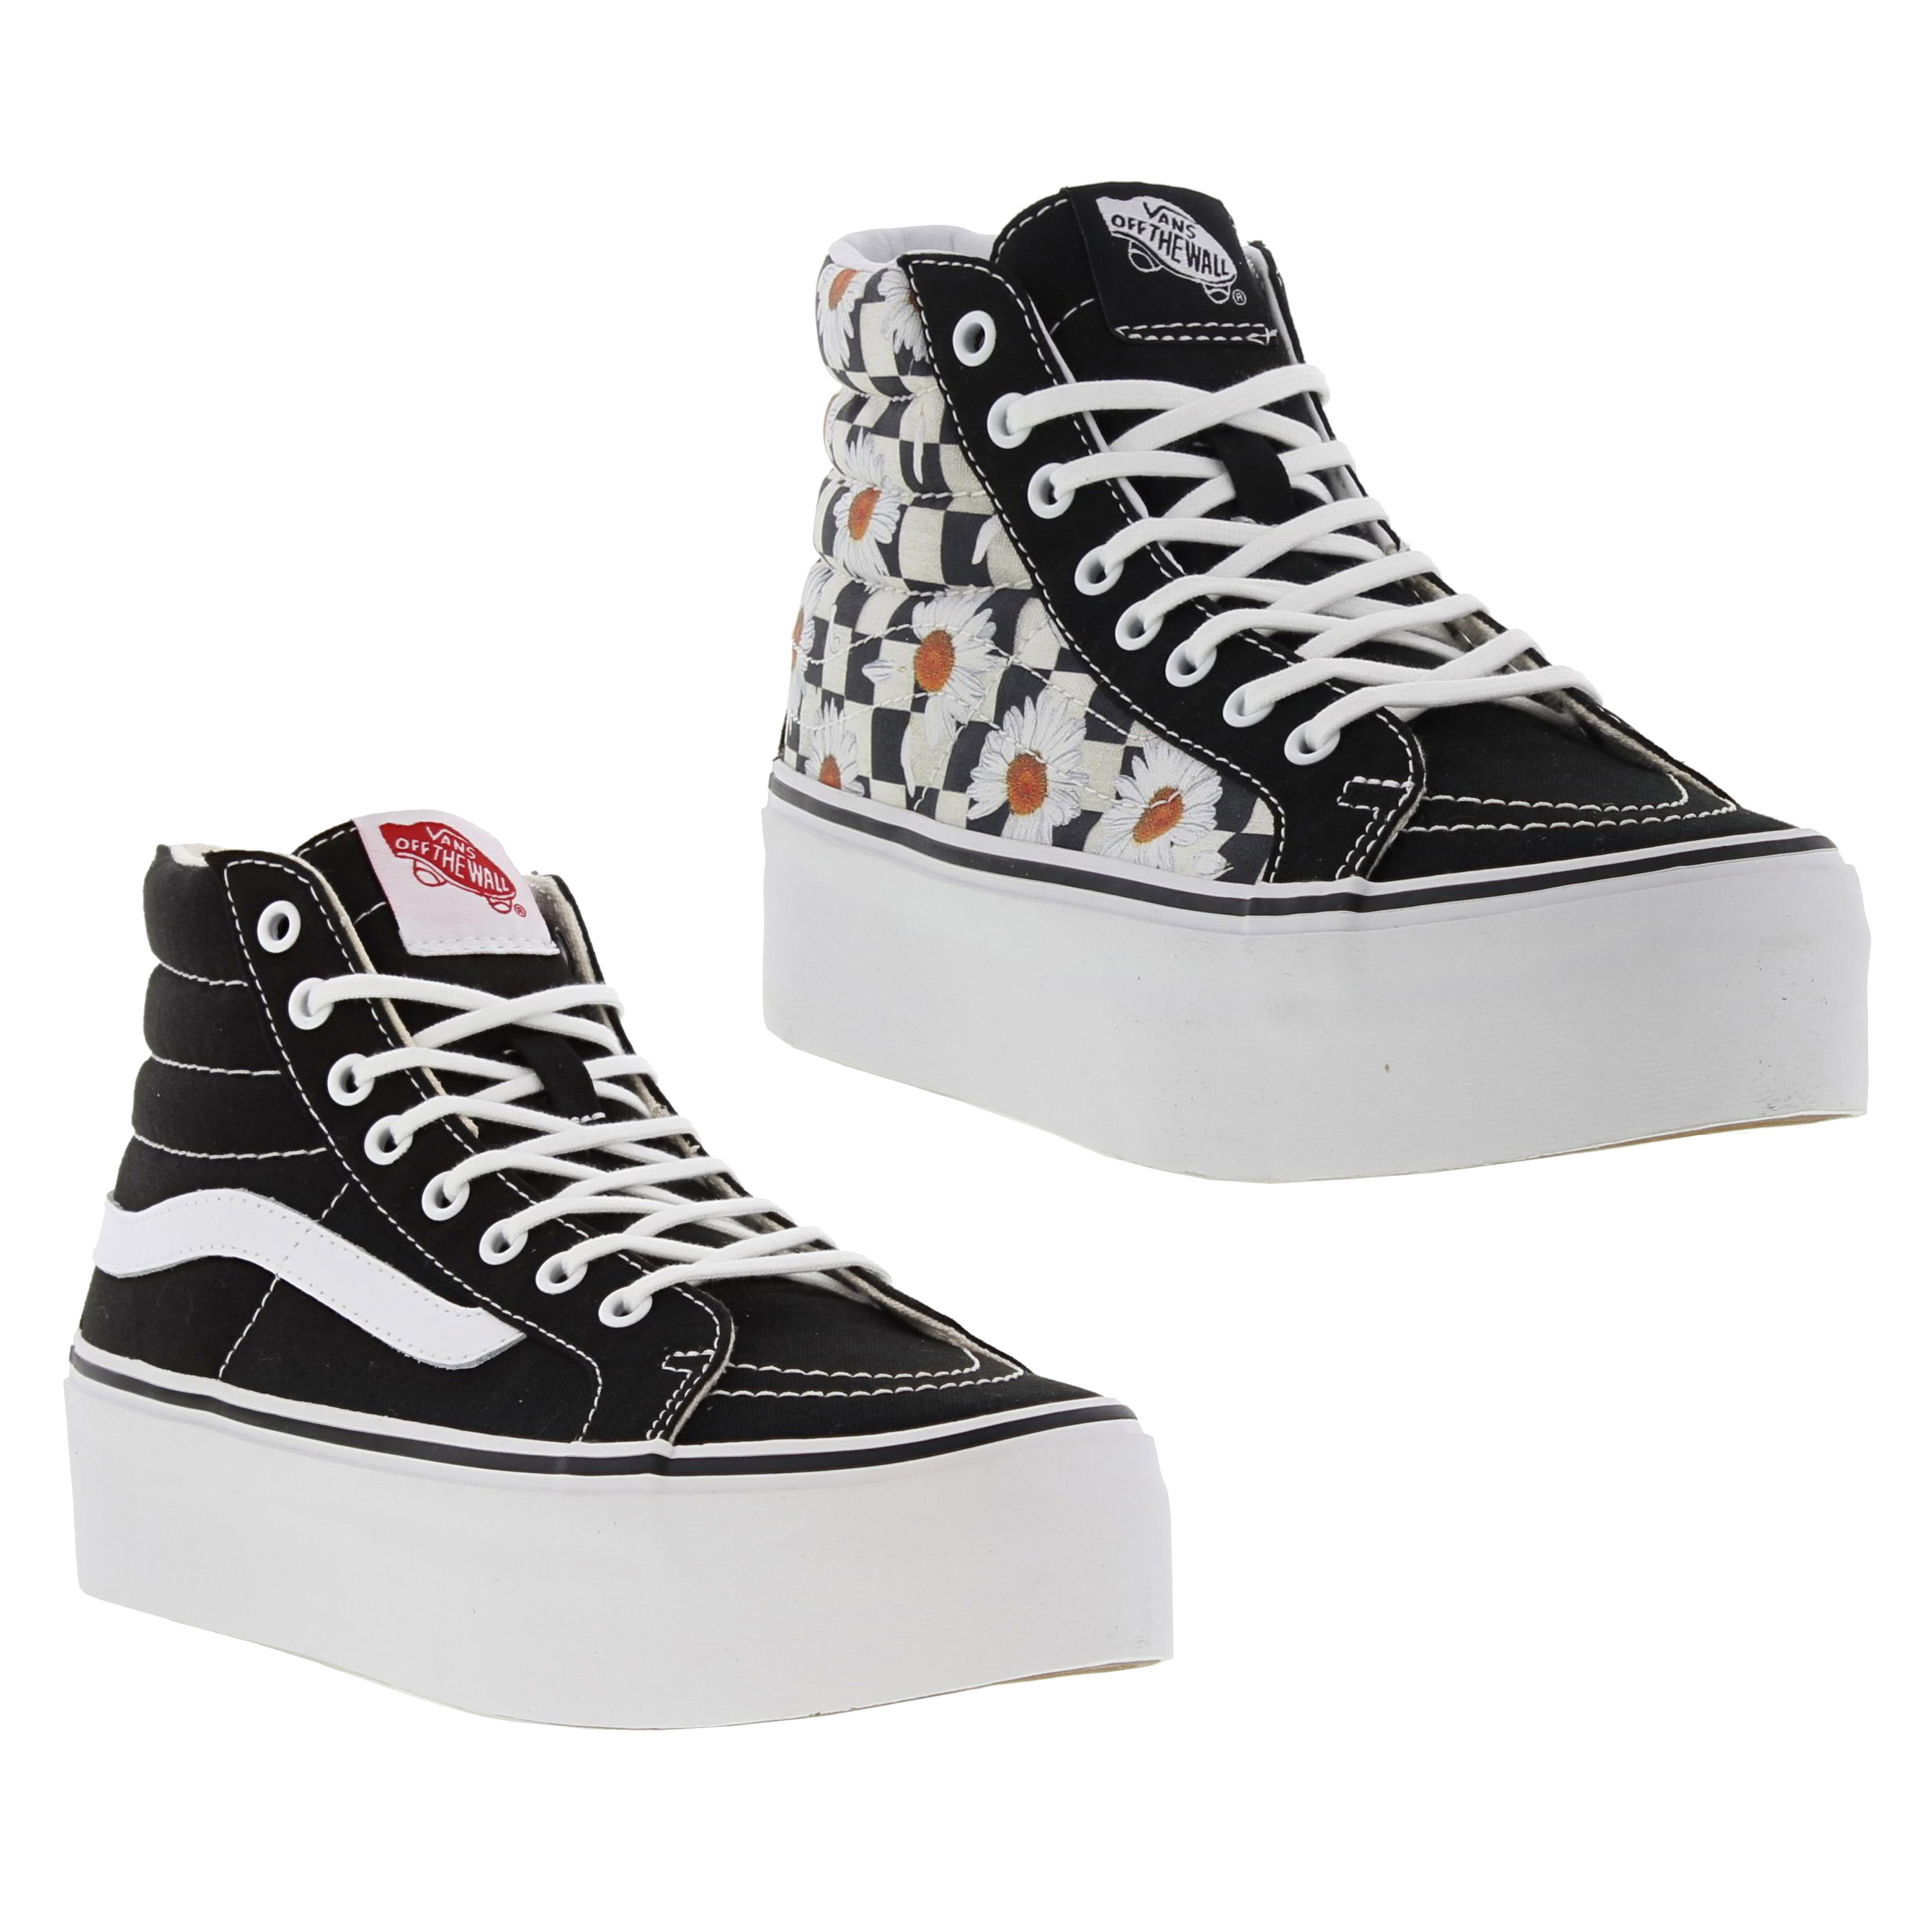 Details about Vans Sk8 Hi Platform Womens Ladies Chunky Hi Top Trainers  Black White Size UK 3- a1d24ef17c